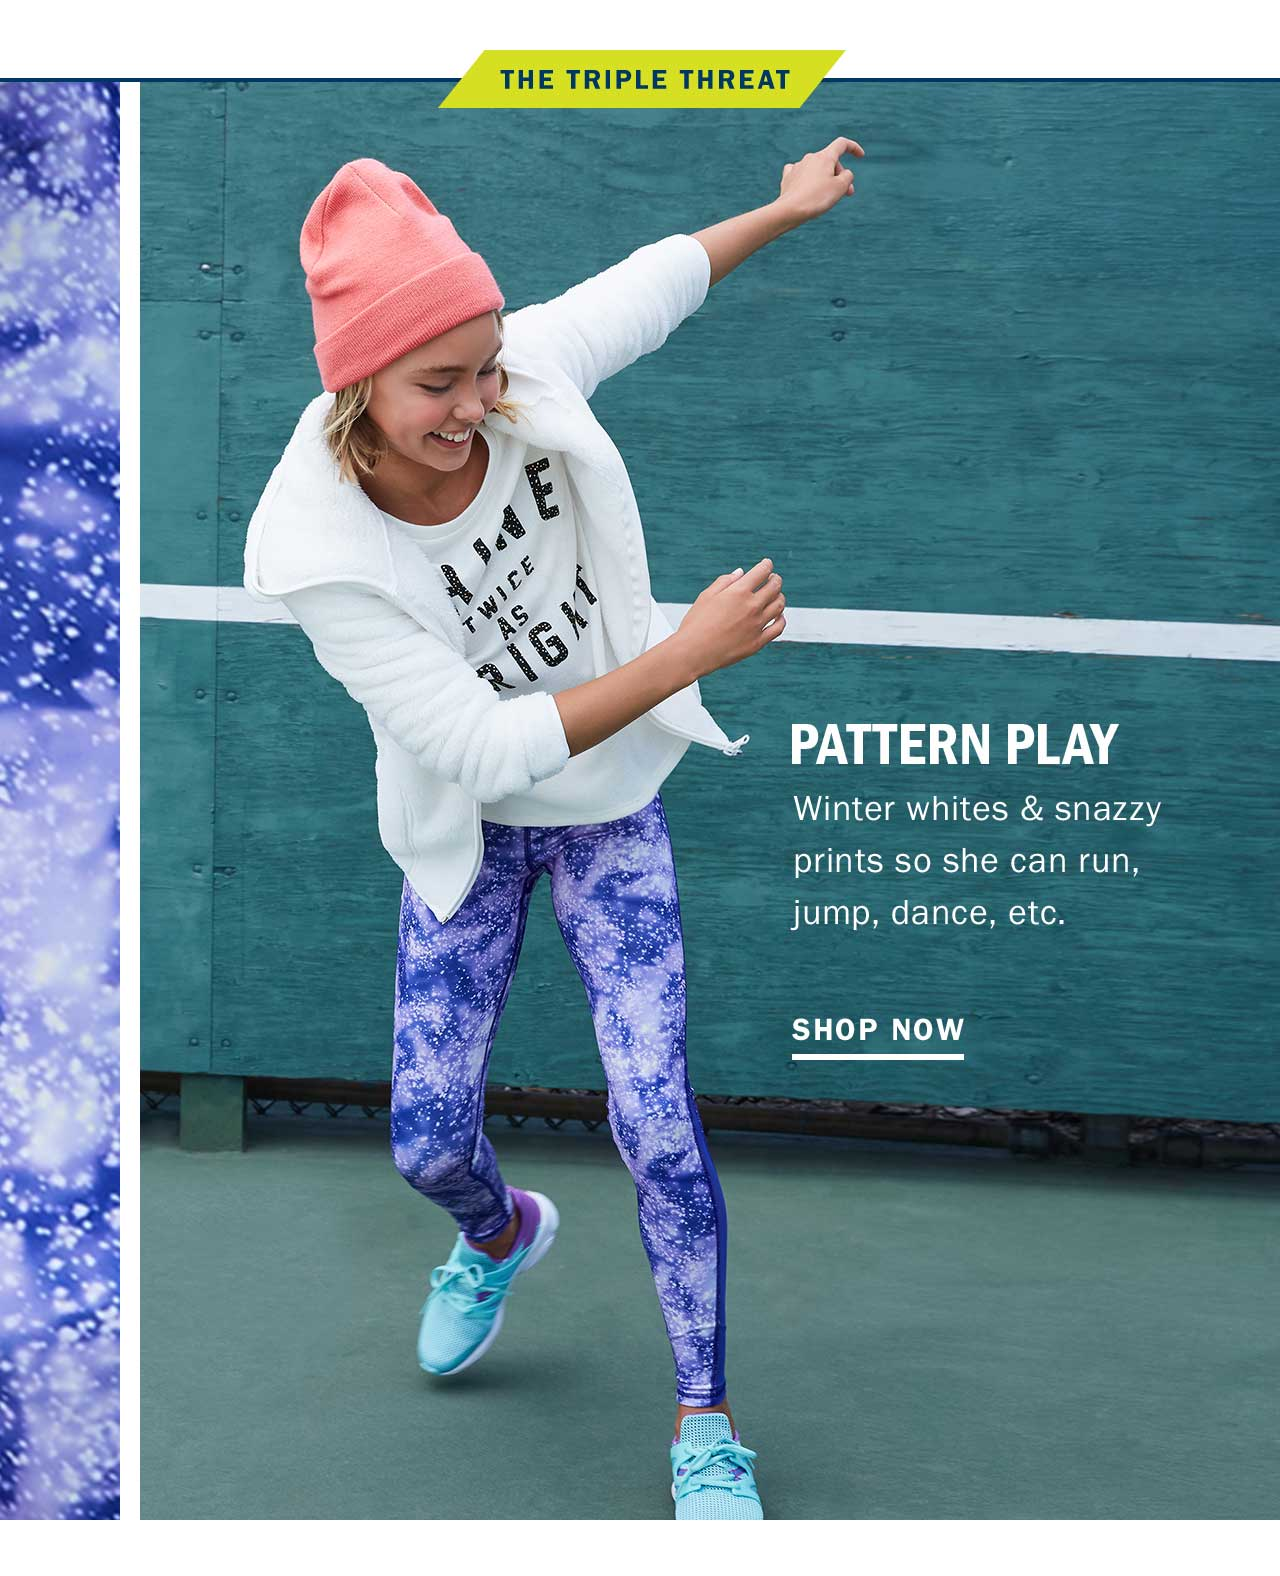 PATTERN PLAY | SHOP NOW